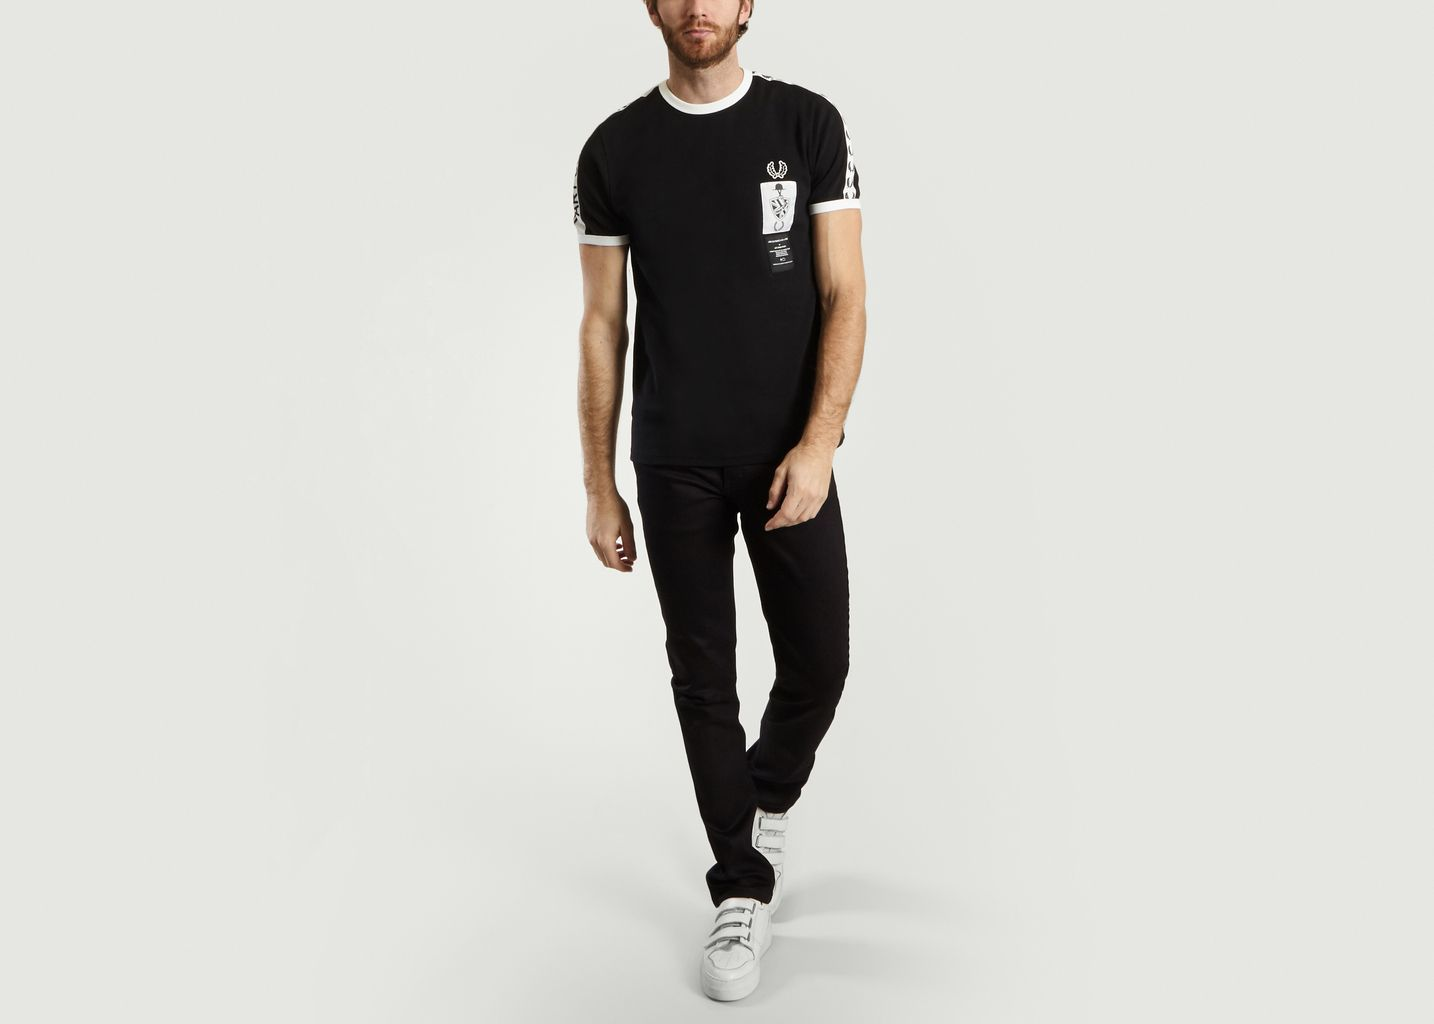 890453b2 Ringer T-shirt Black Fred Perry x Art Comes First | L'Exception